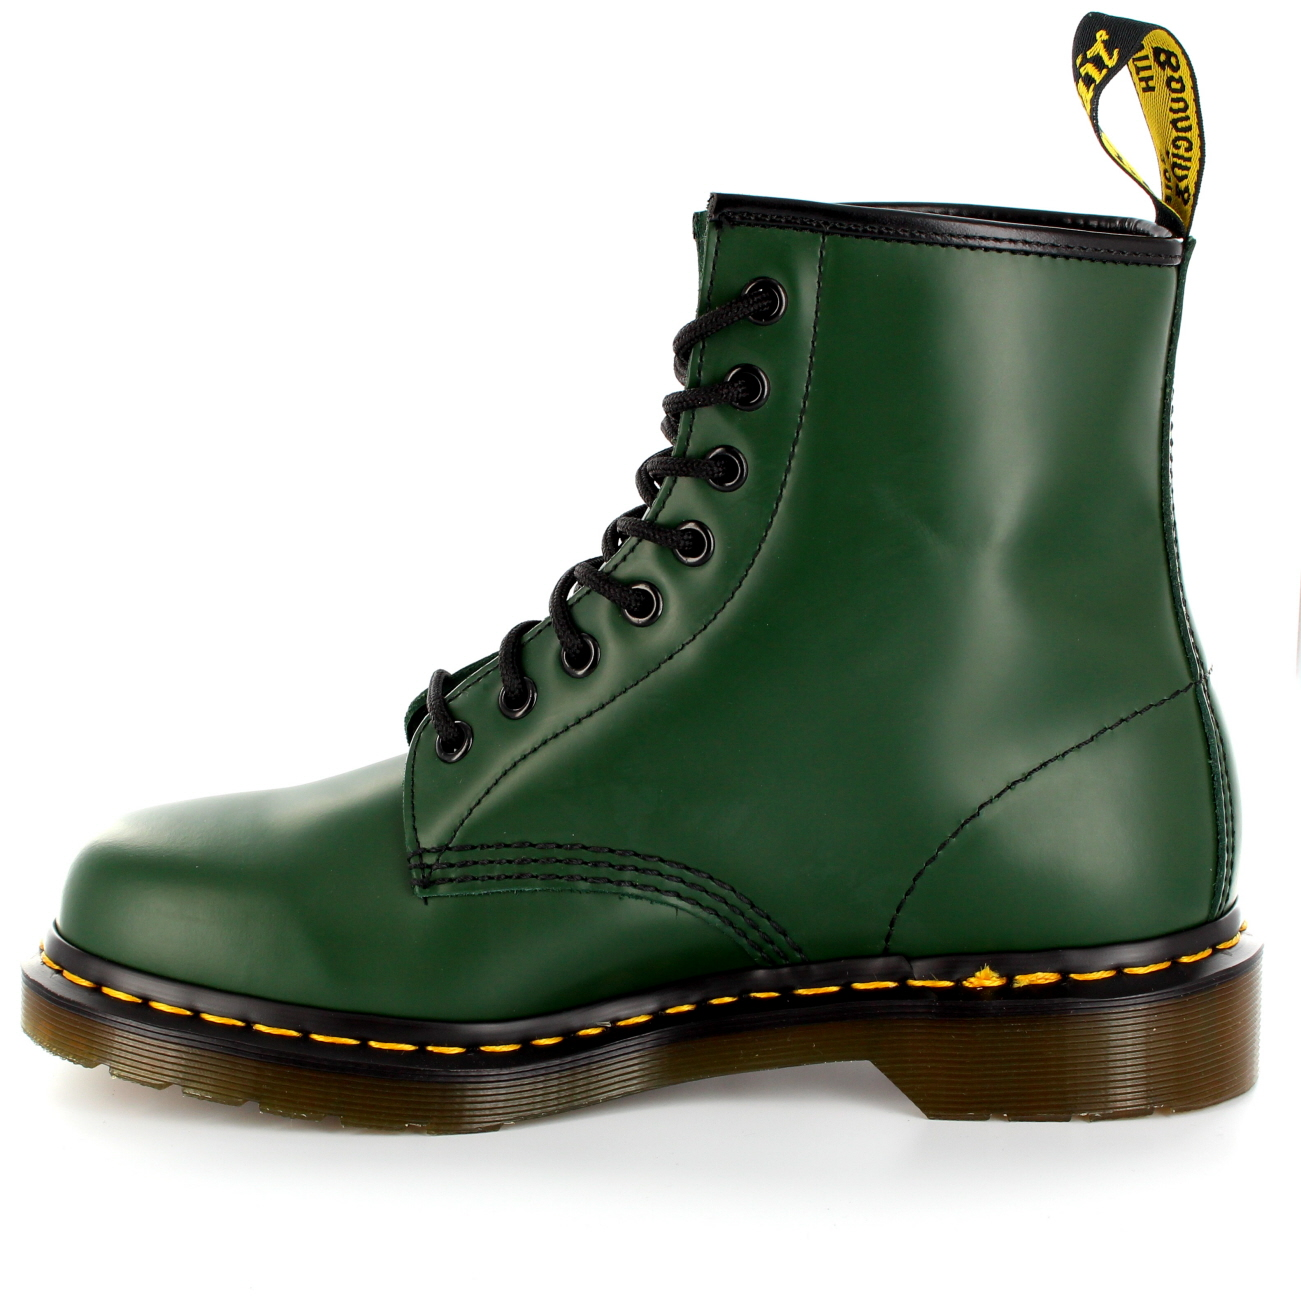 New 25+ Best Ideas About Oxford Boots On Pinterest | Oxfords Brown Oxfords And Oxford Shoes